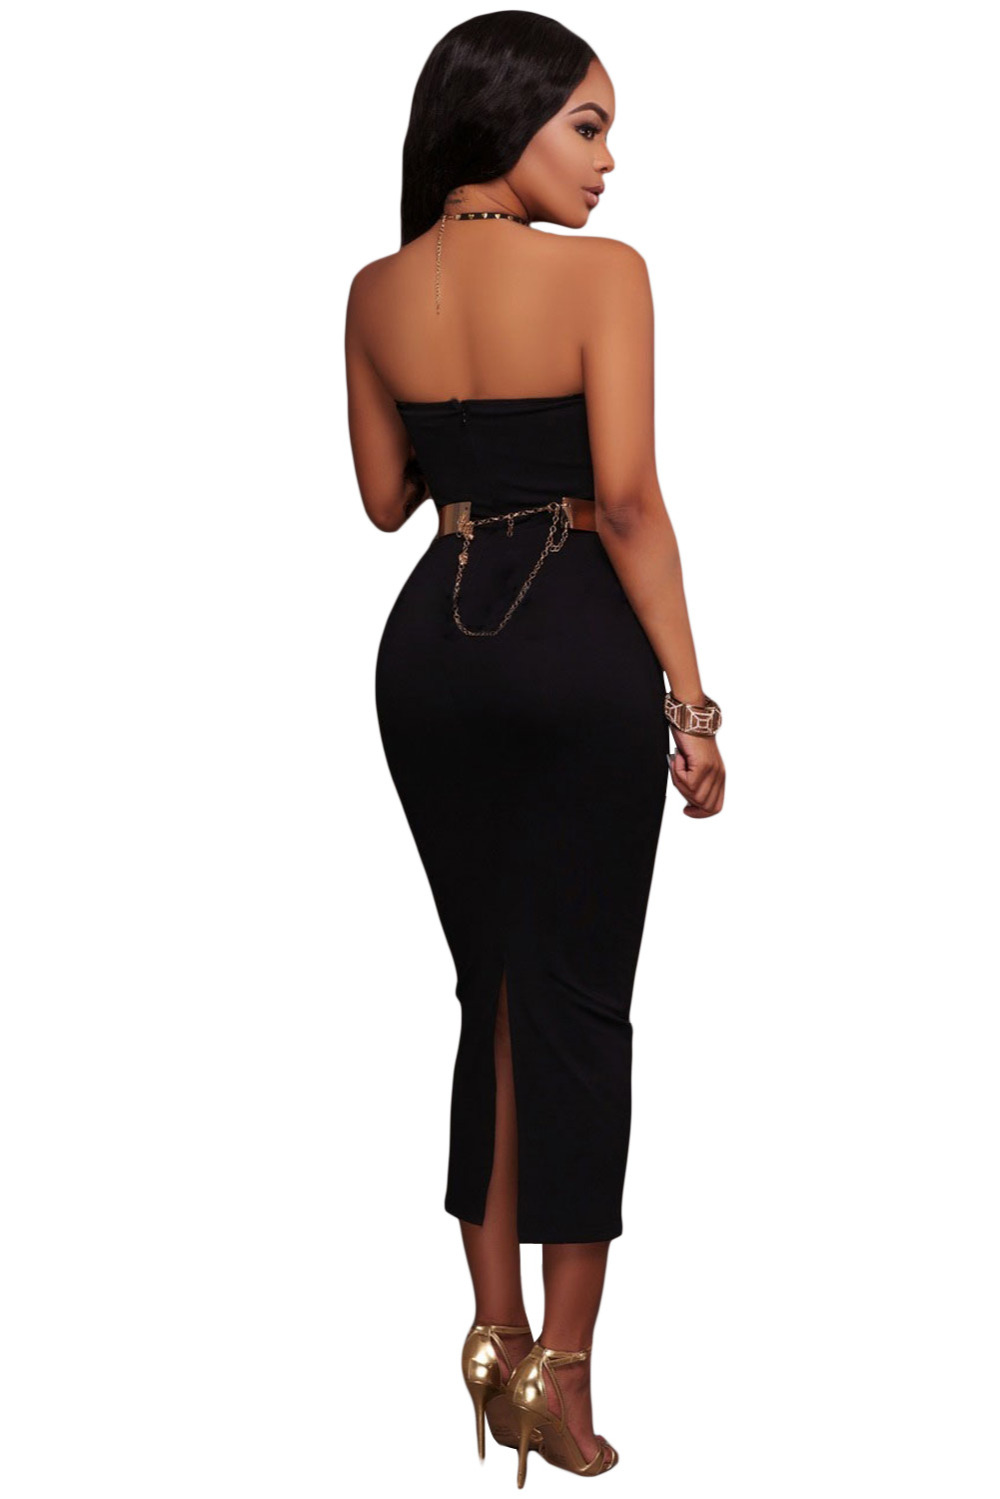 b5a7ee4dc94a Black Sexy Strapless V neck Side Slits Tube Midi Dress 2017 Amazing Lace up  On Legs Women s Fashion Party Club Occasion Dresses-in Dresses from Women s  ...